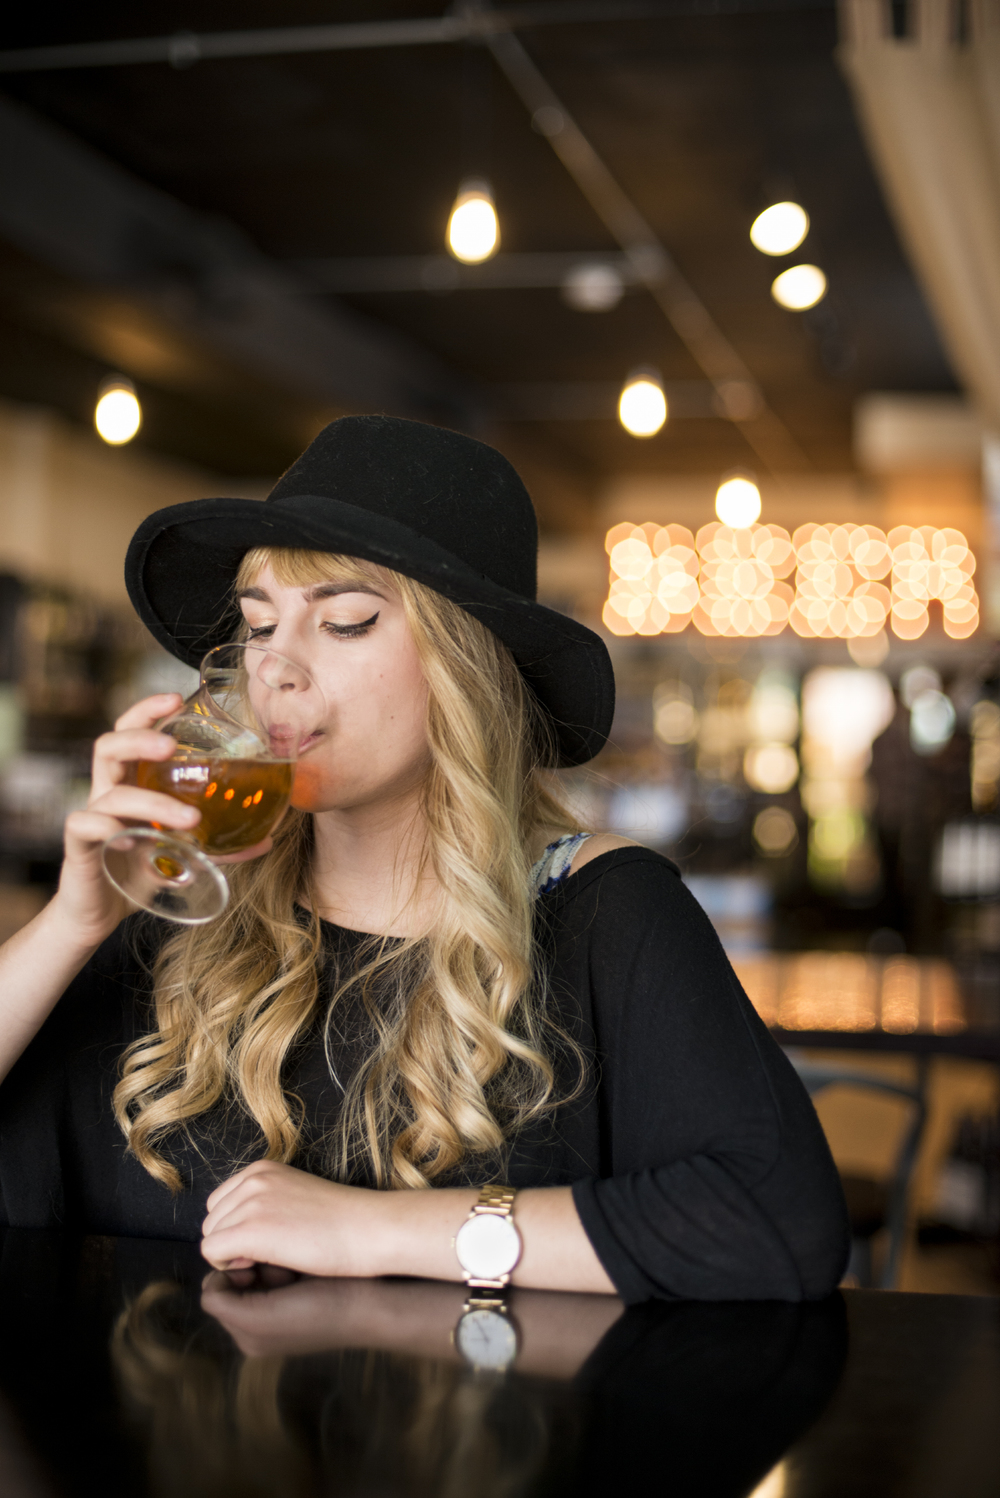 sarahwintlephotography_beer_tasting_lifestyle_original_